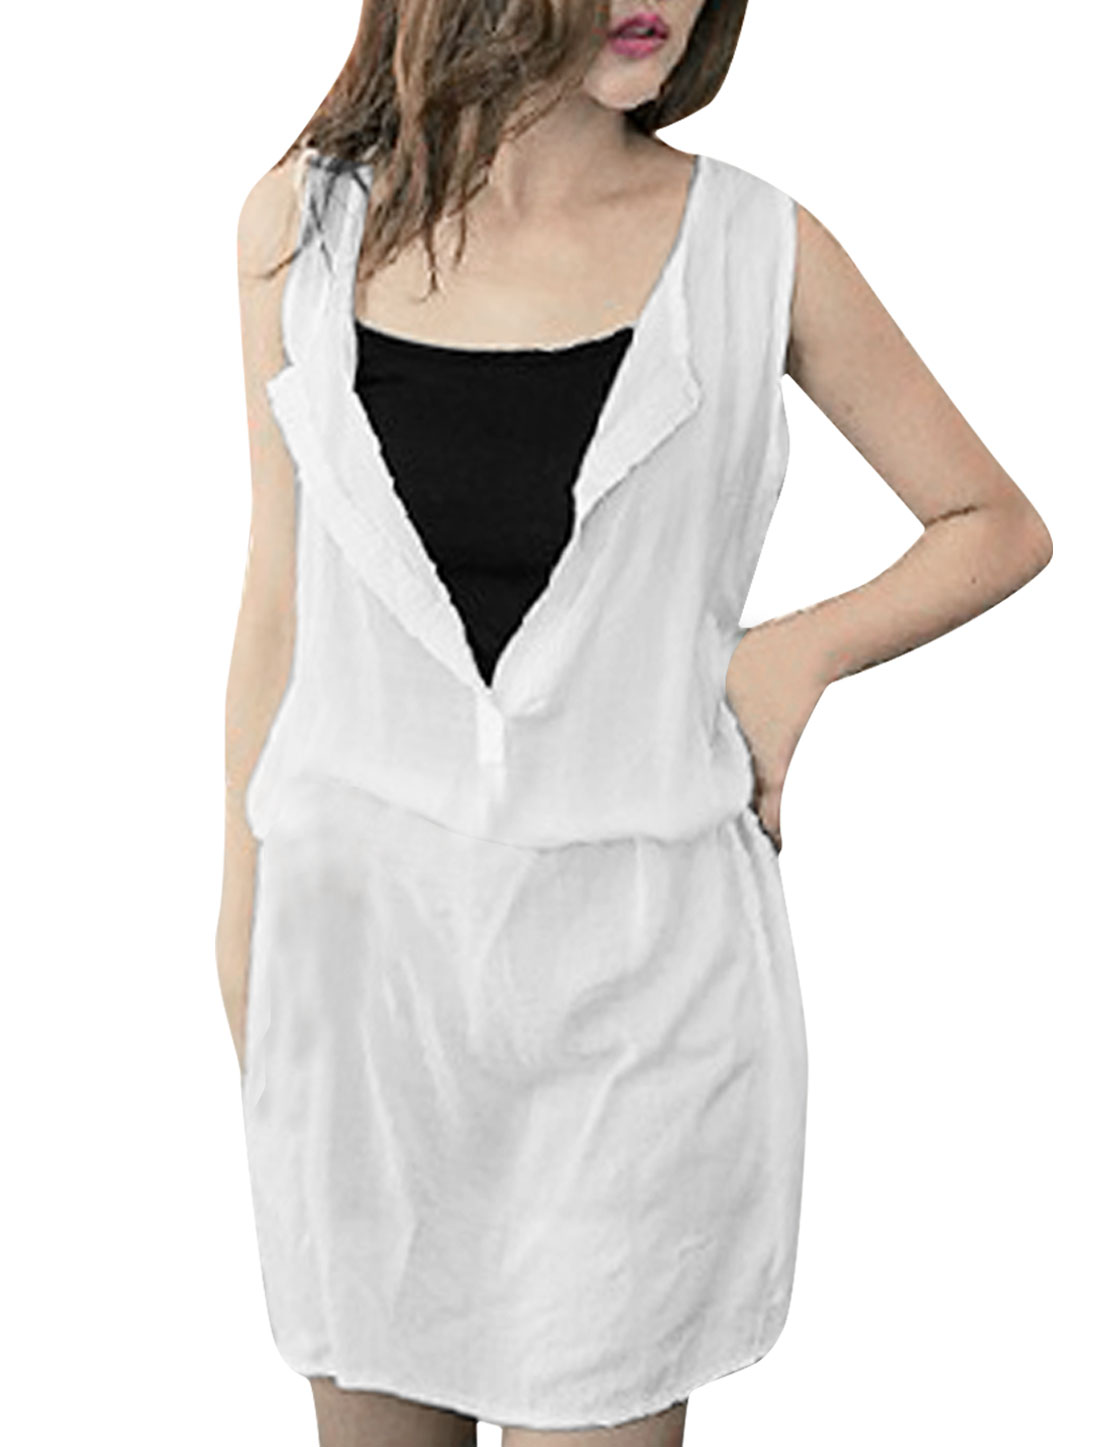 Women White XS Spaghetti Straps Tank Top w Deep V Neck Casual Dress